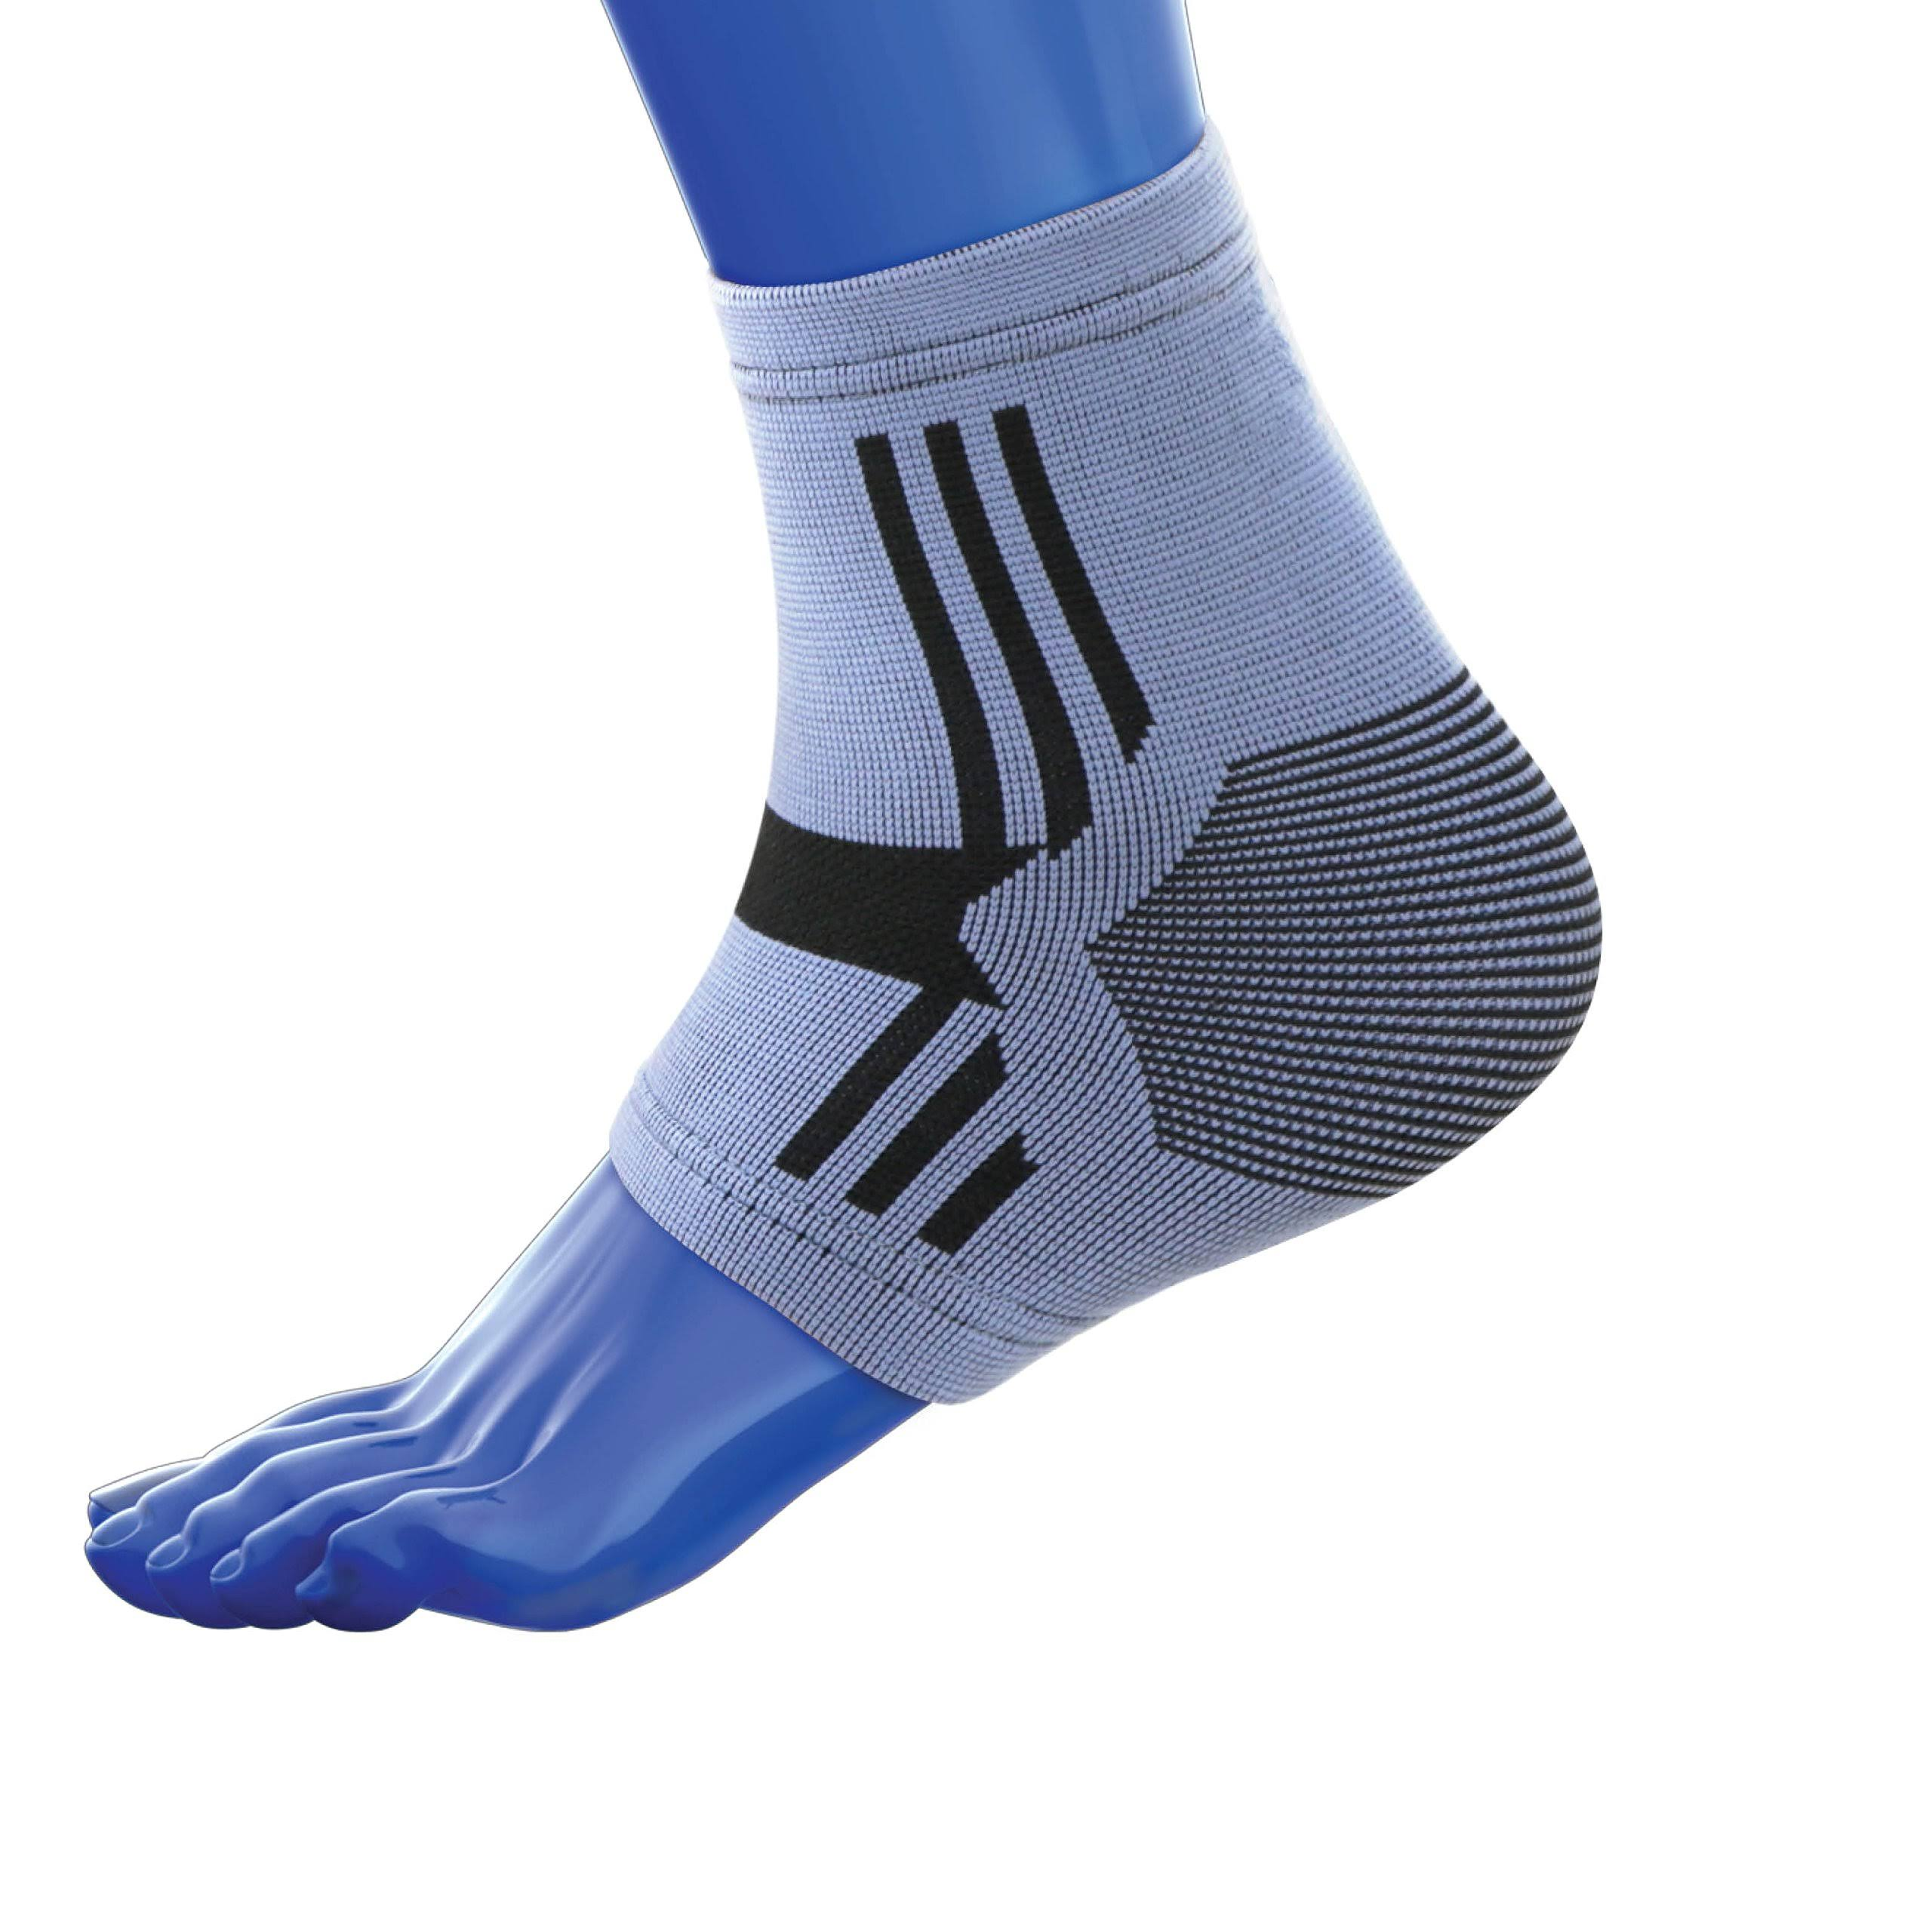 Kedley Elastic Ankle Support